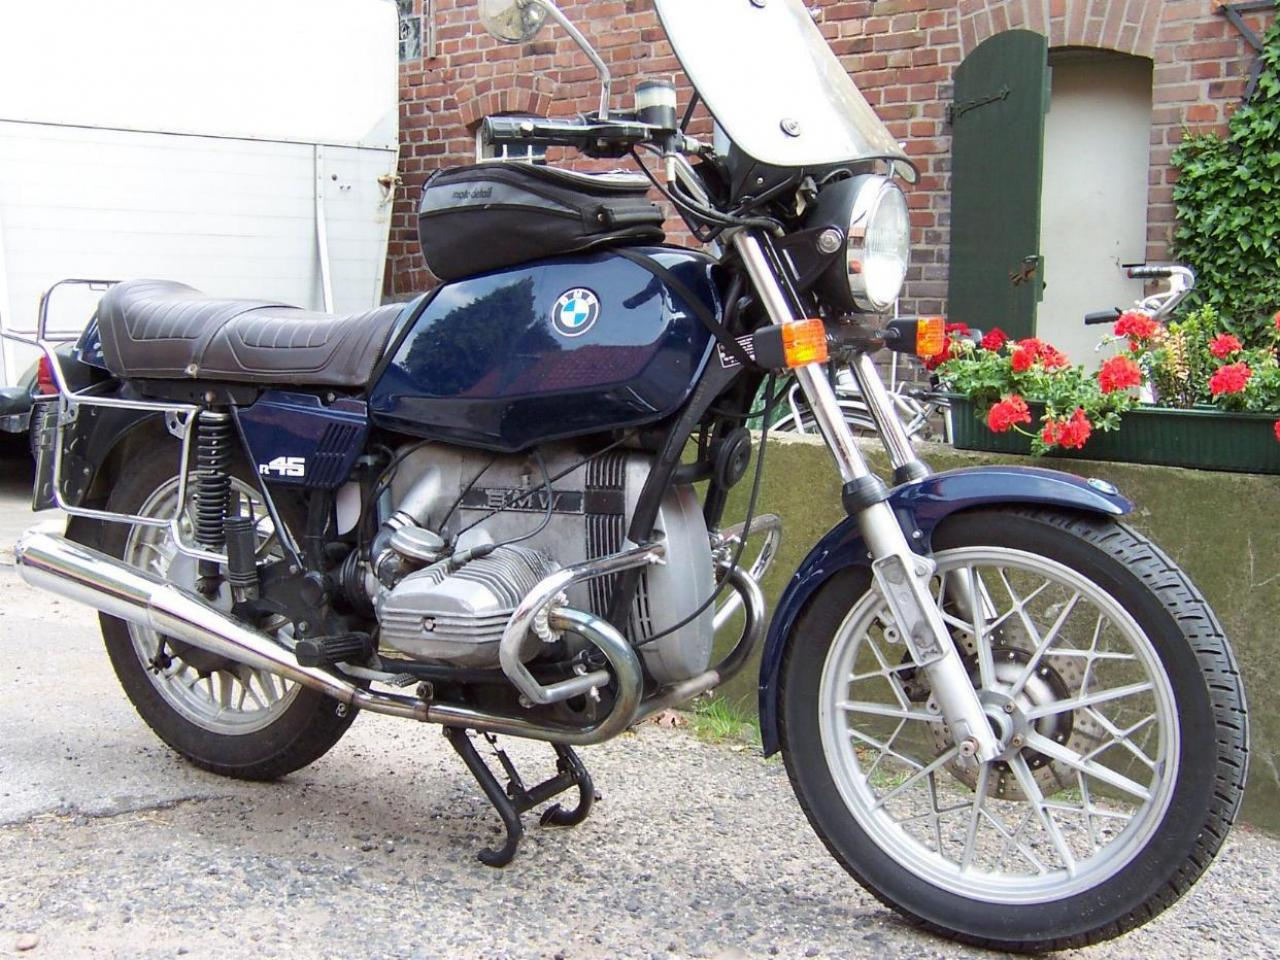 1980 BMW R45 (reduced effect) #1